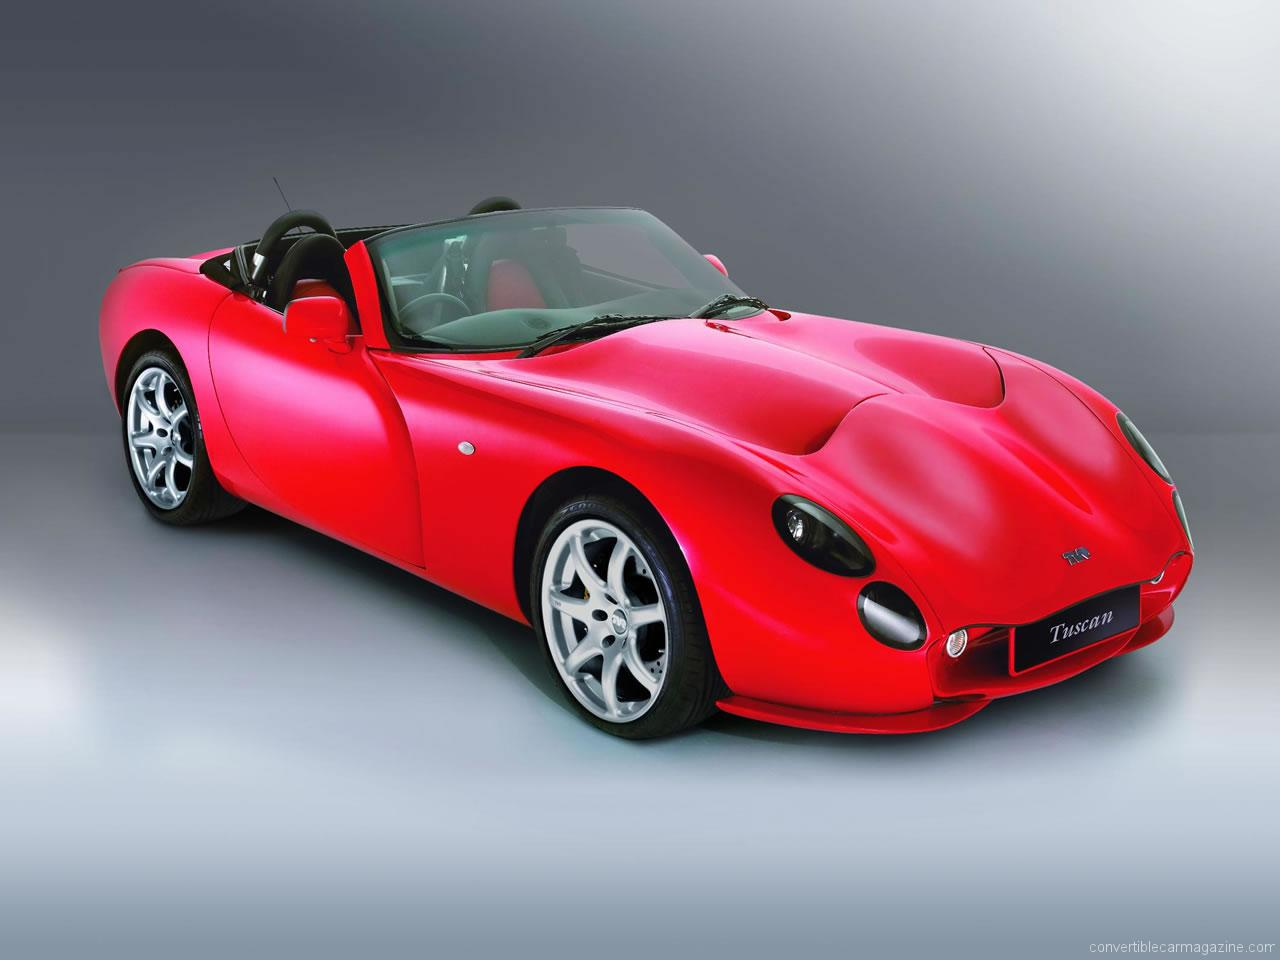 Tvr convertible photo - 7